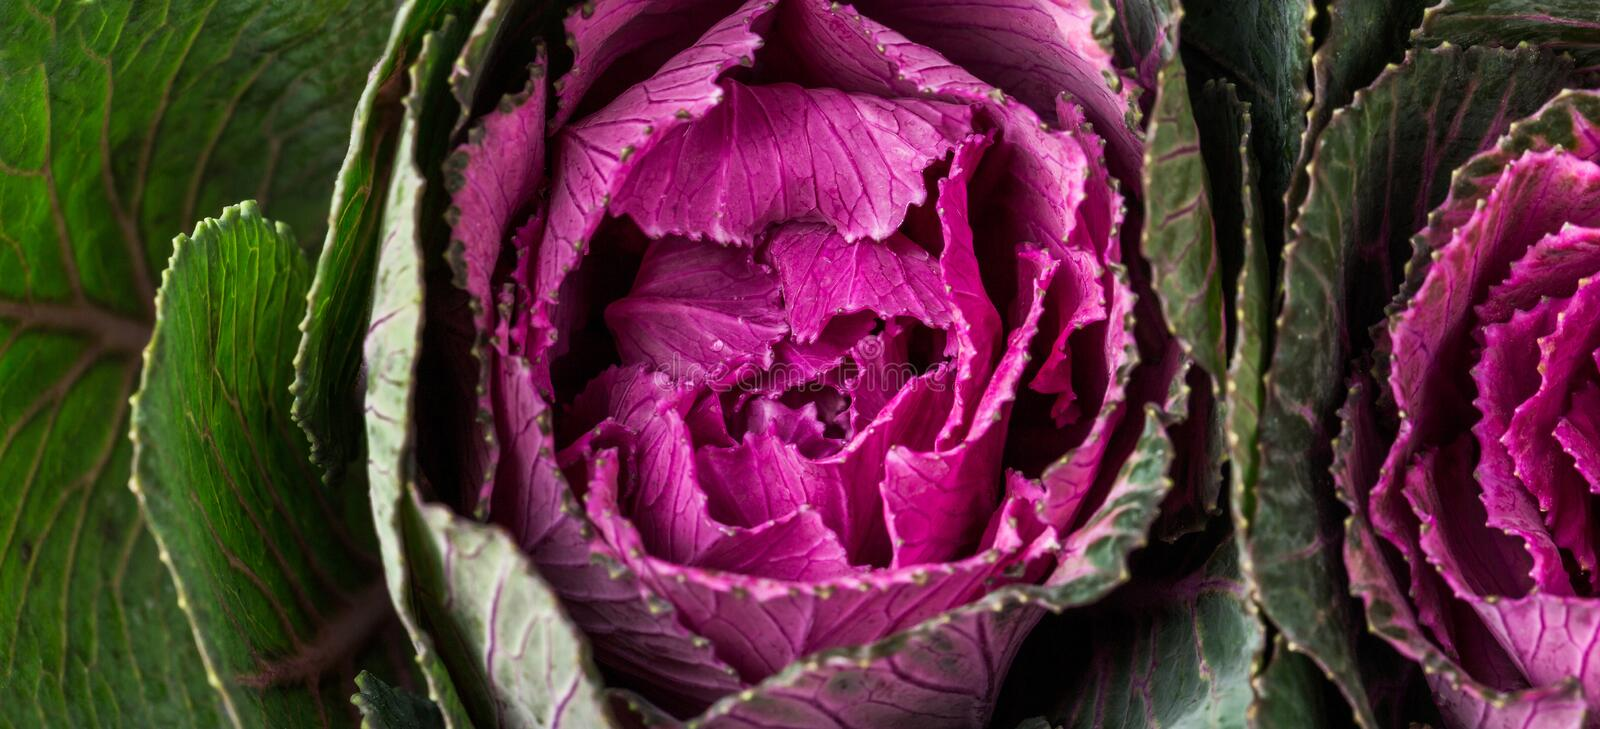 Fresh purple ornamental decorative cabbage. Healthy food, fresh vegetables. Top view royalty free stock images